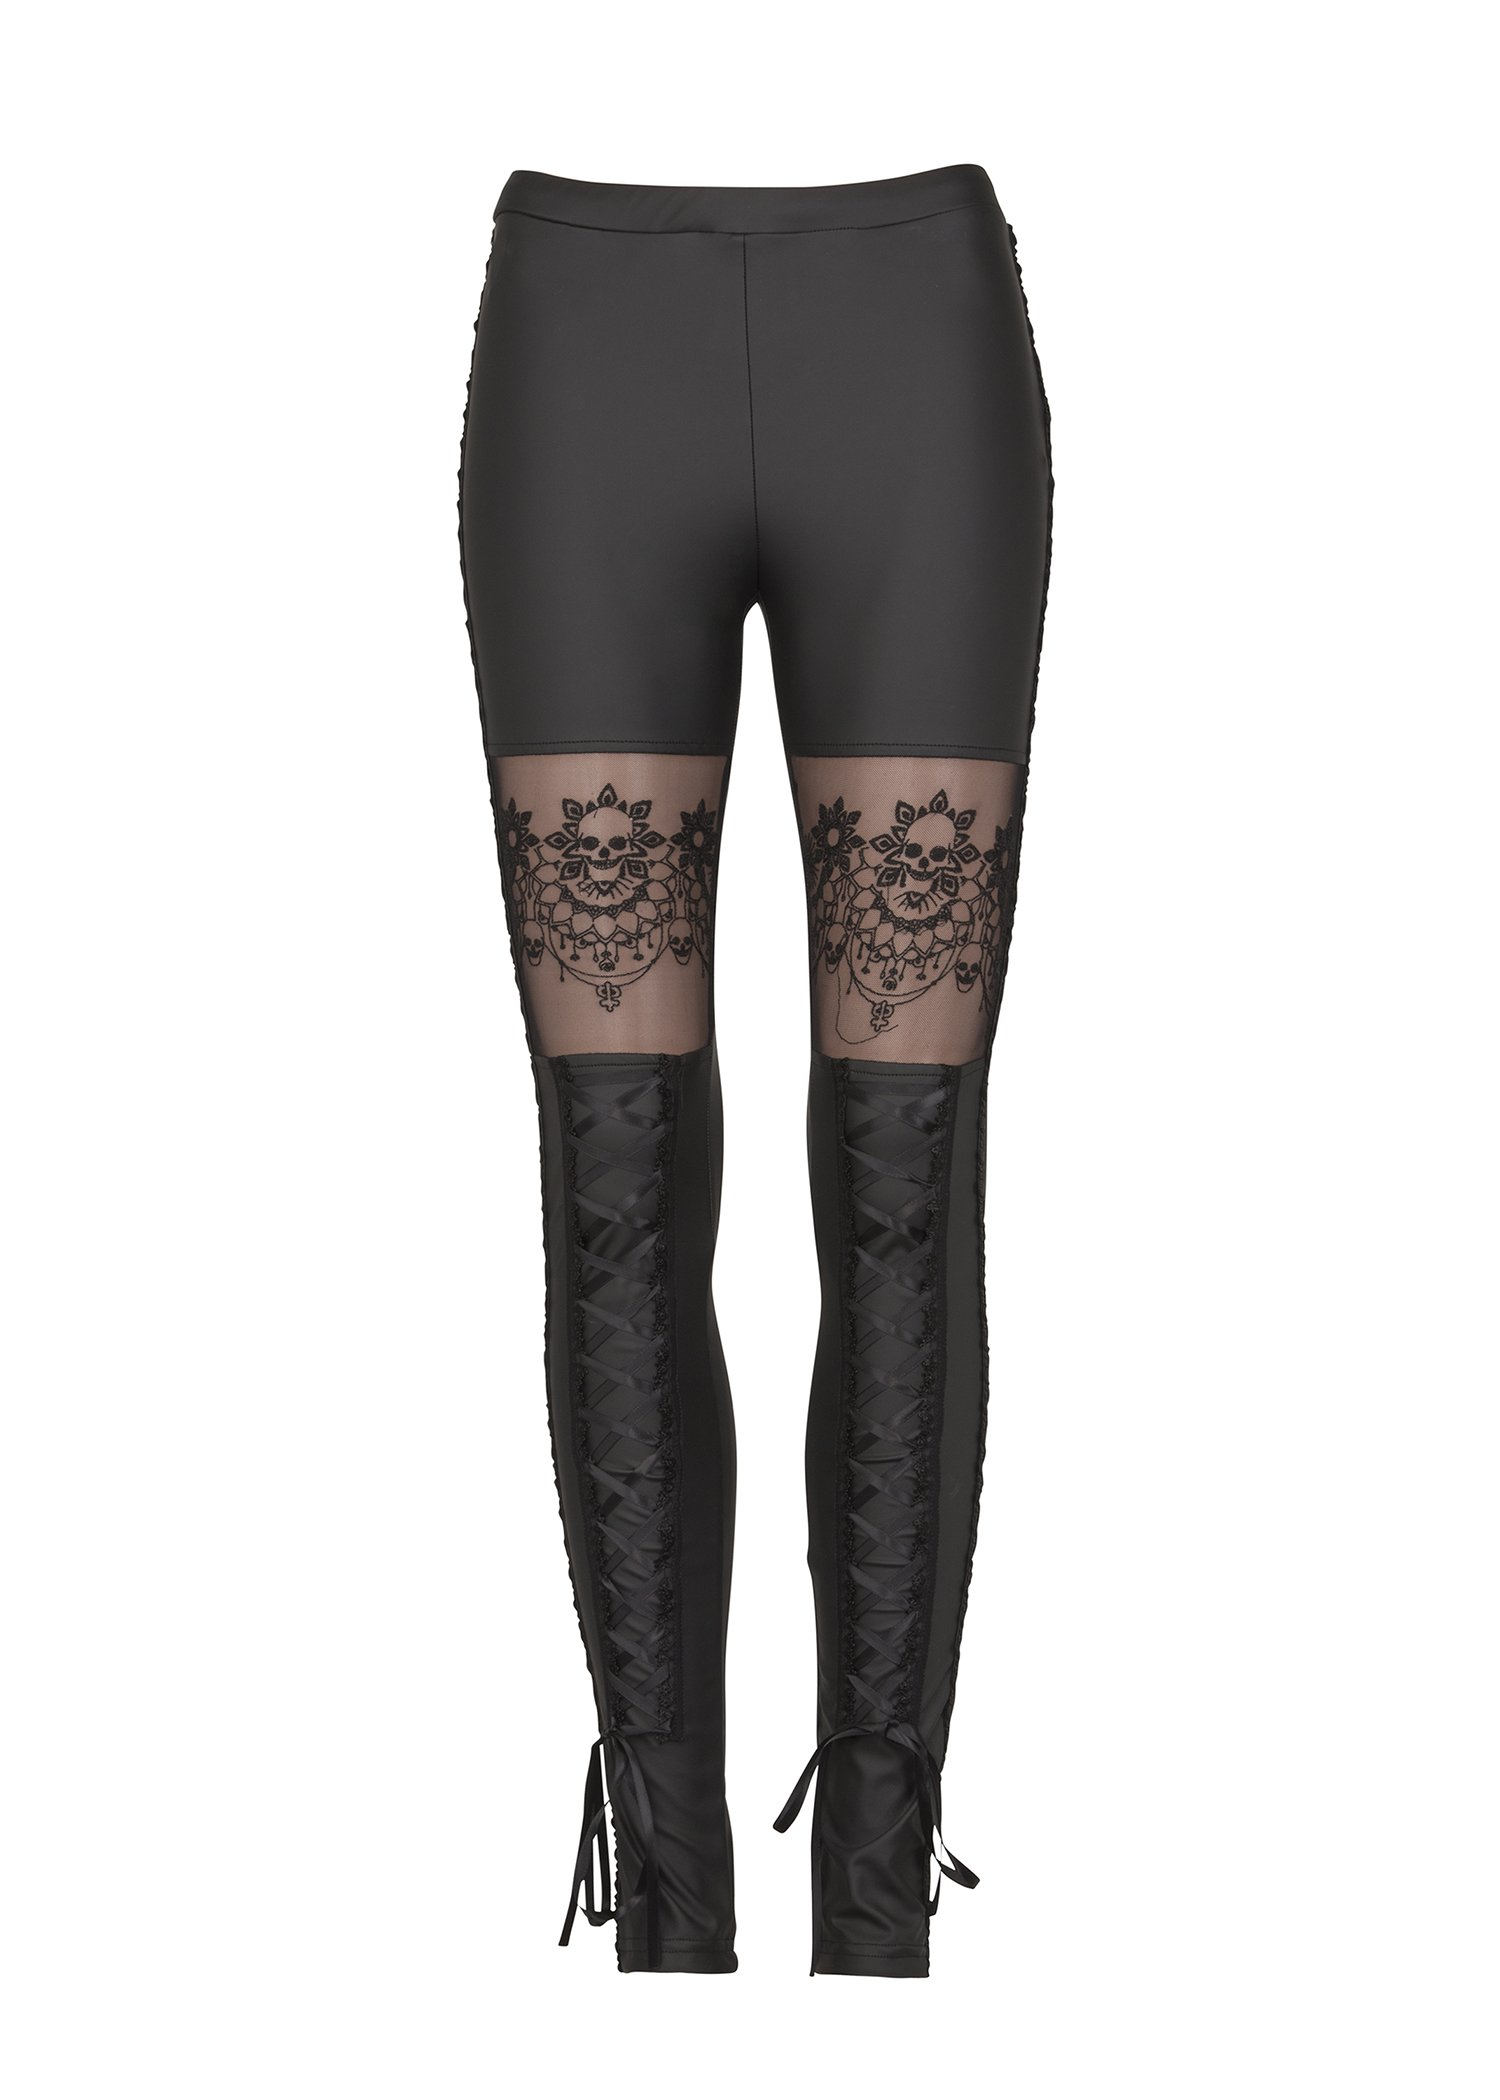 Womens Punk Rave Victorian Style Skull Faux Leather Leggings with Lace – Size X-Large